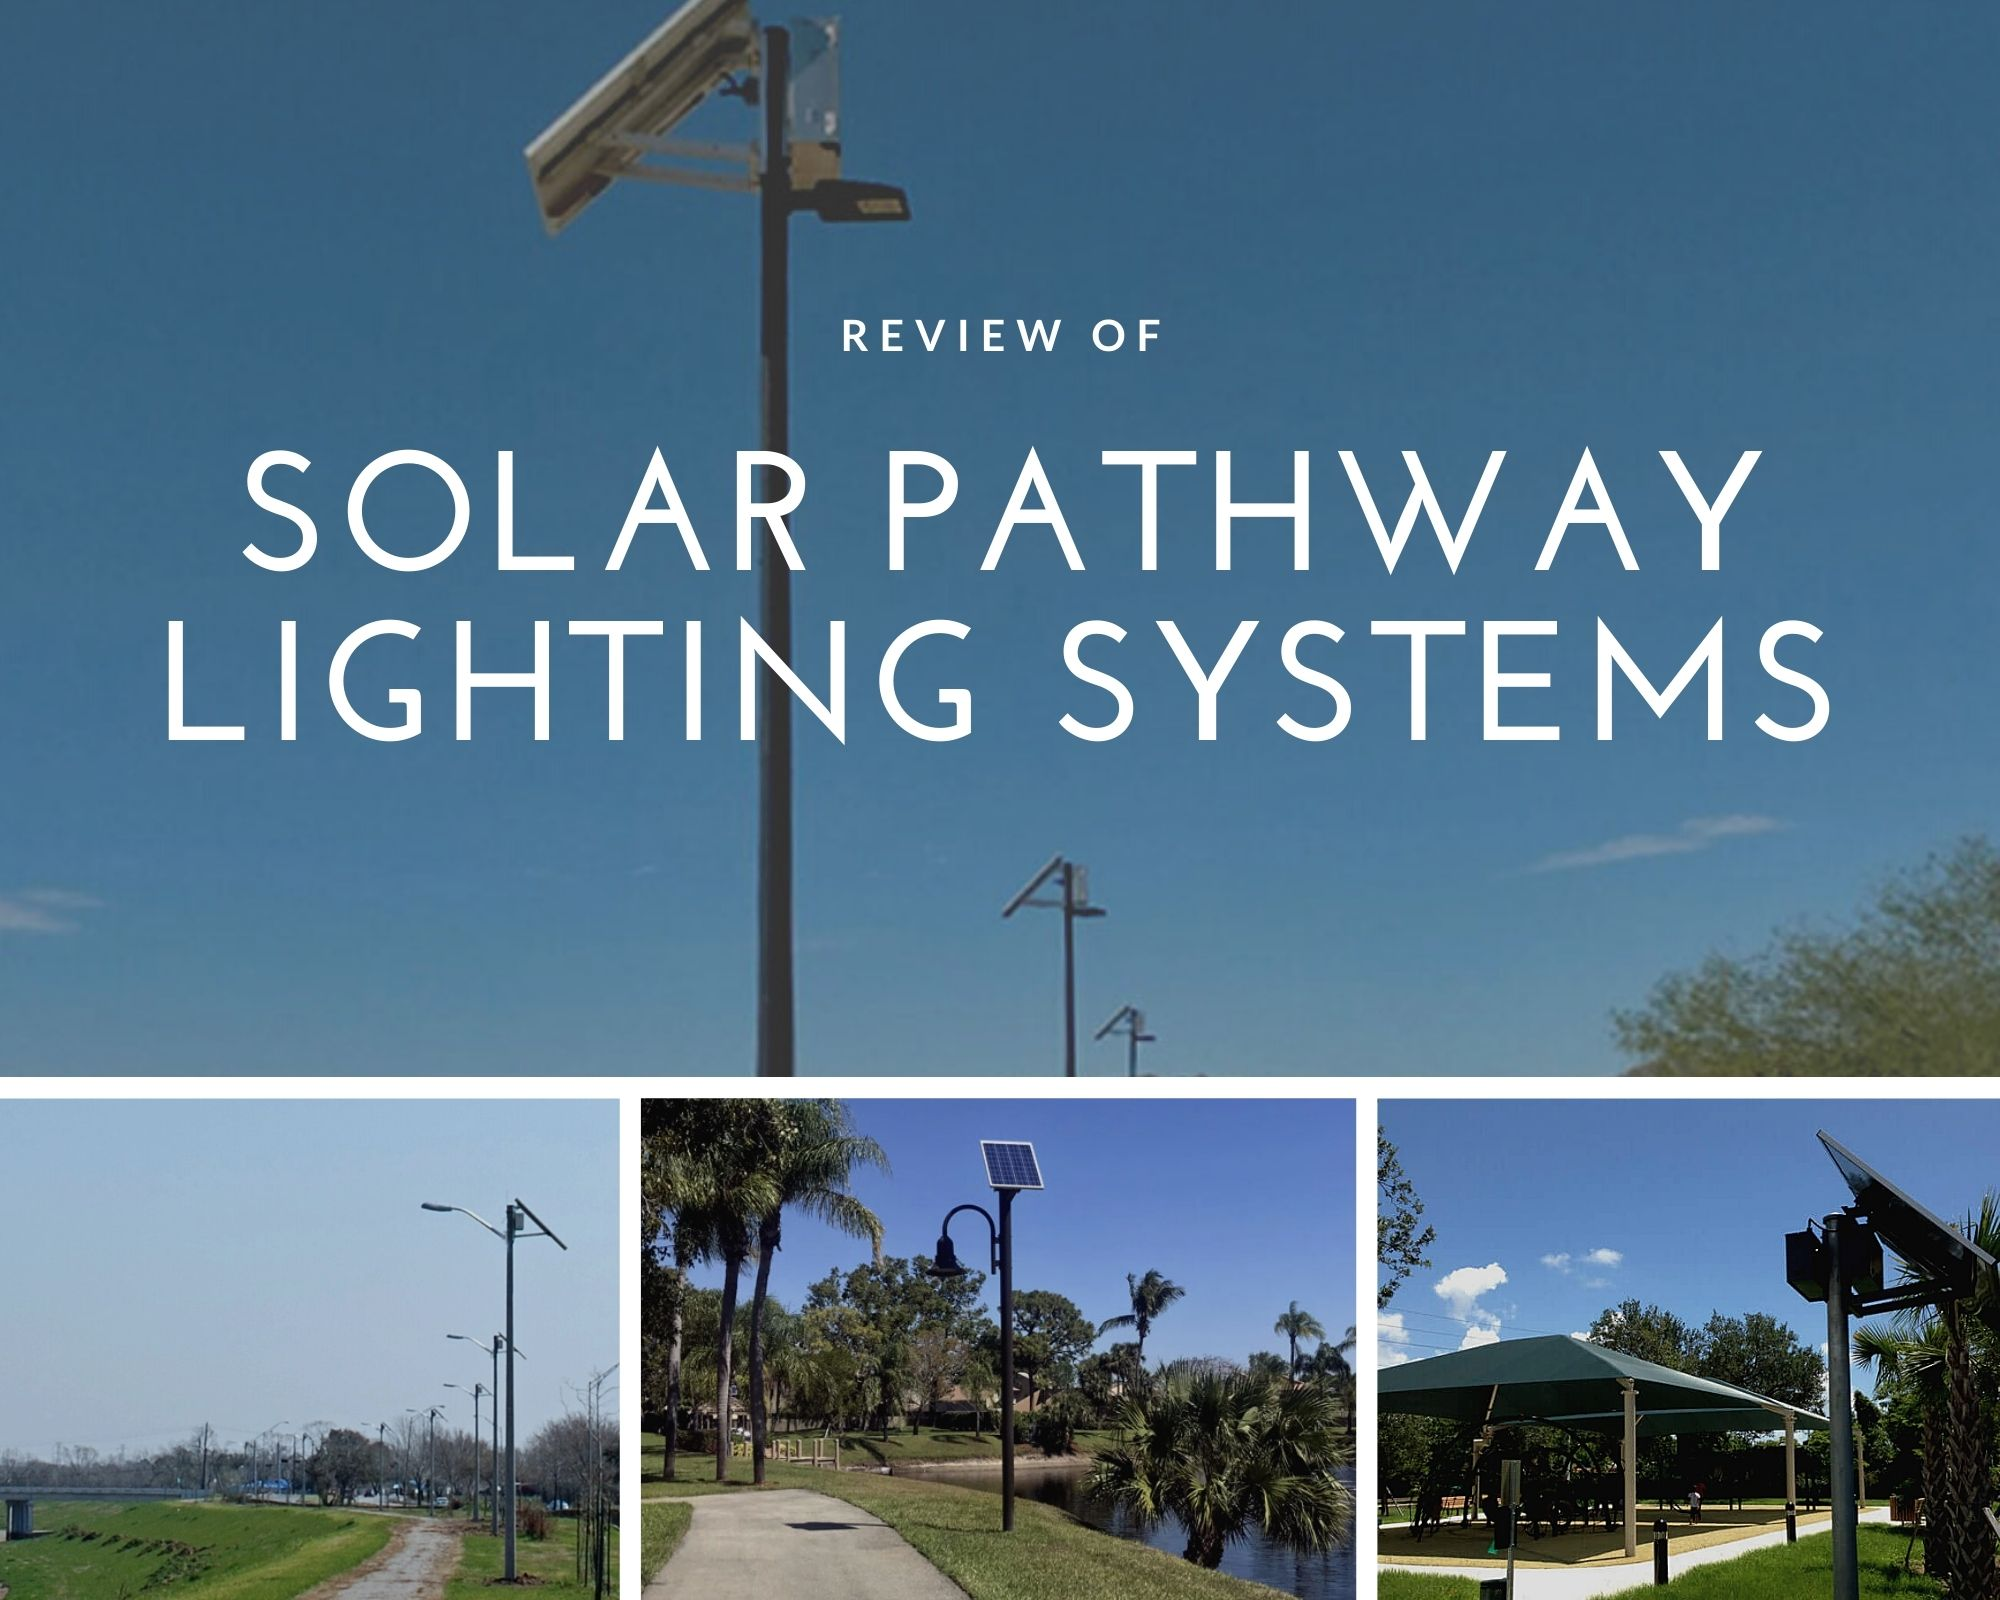 Solar Pathway Lighting Systems